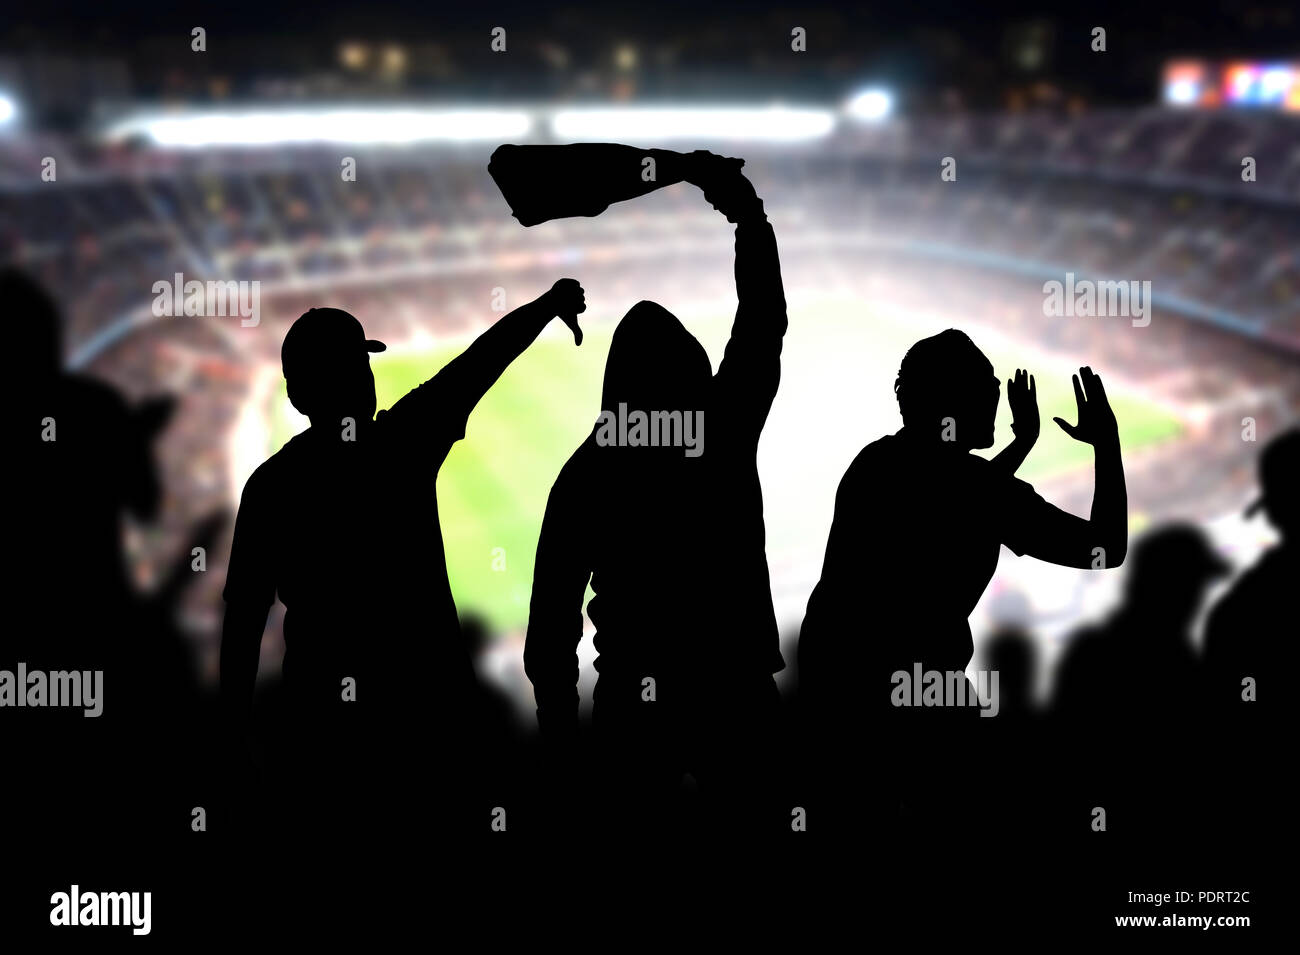 Football hooligans in game. Angry soccer fans shouting and booing in the crowd. Losing team fans got mad. Furious silhouette people complain. Stock Photo